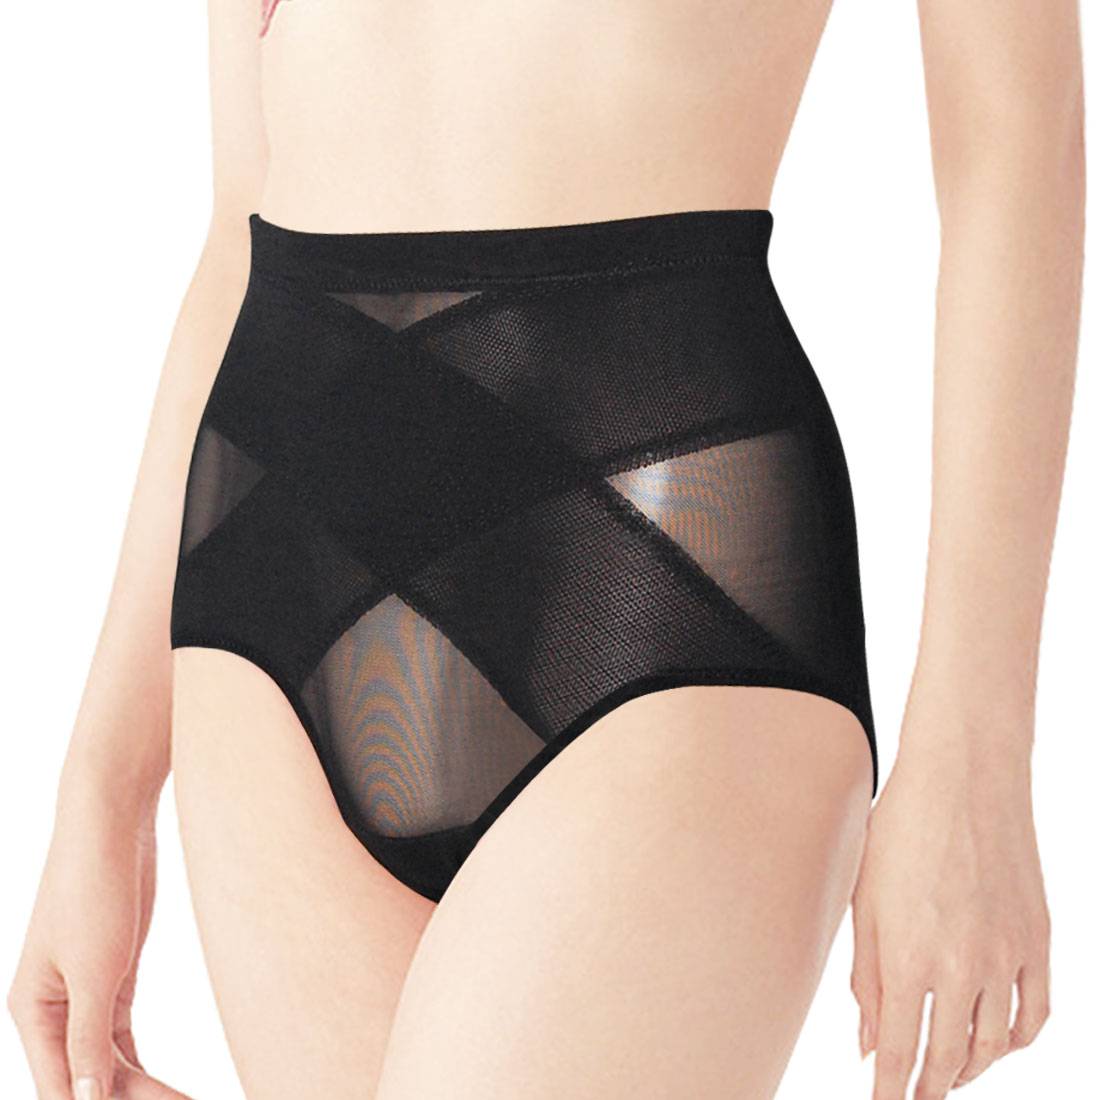 Woman Solid Black Underwear High Waist Stretch Briefs XS